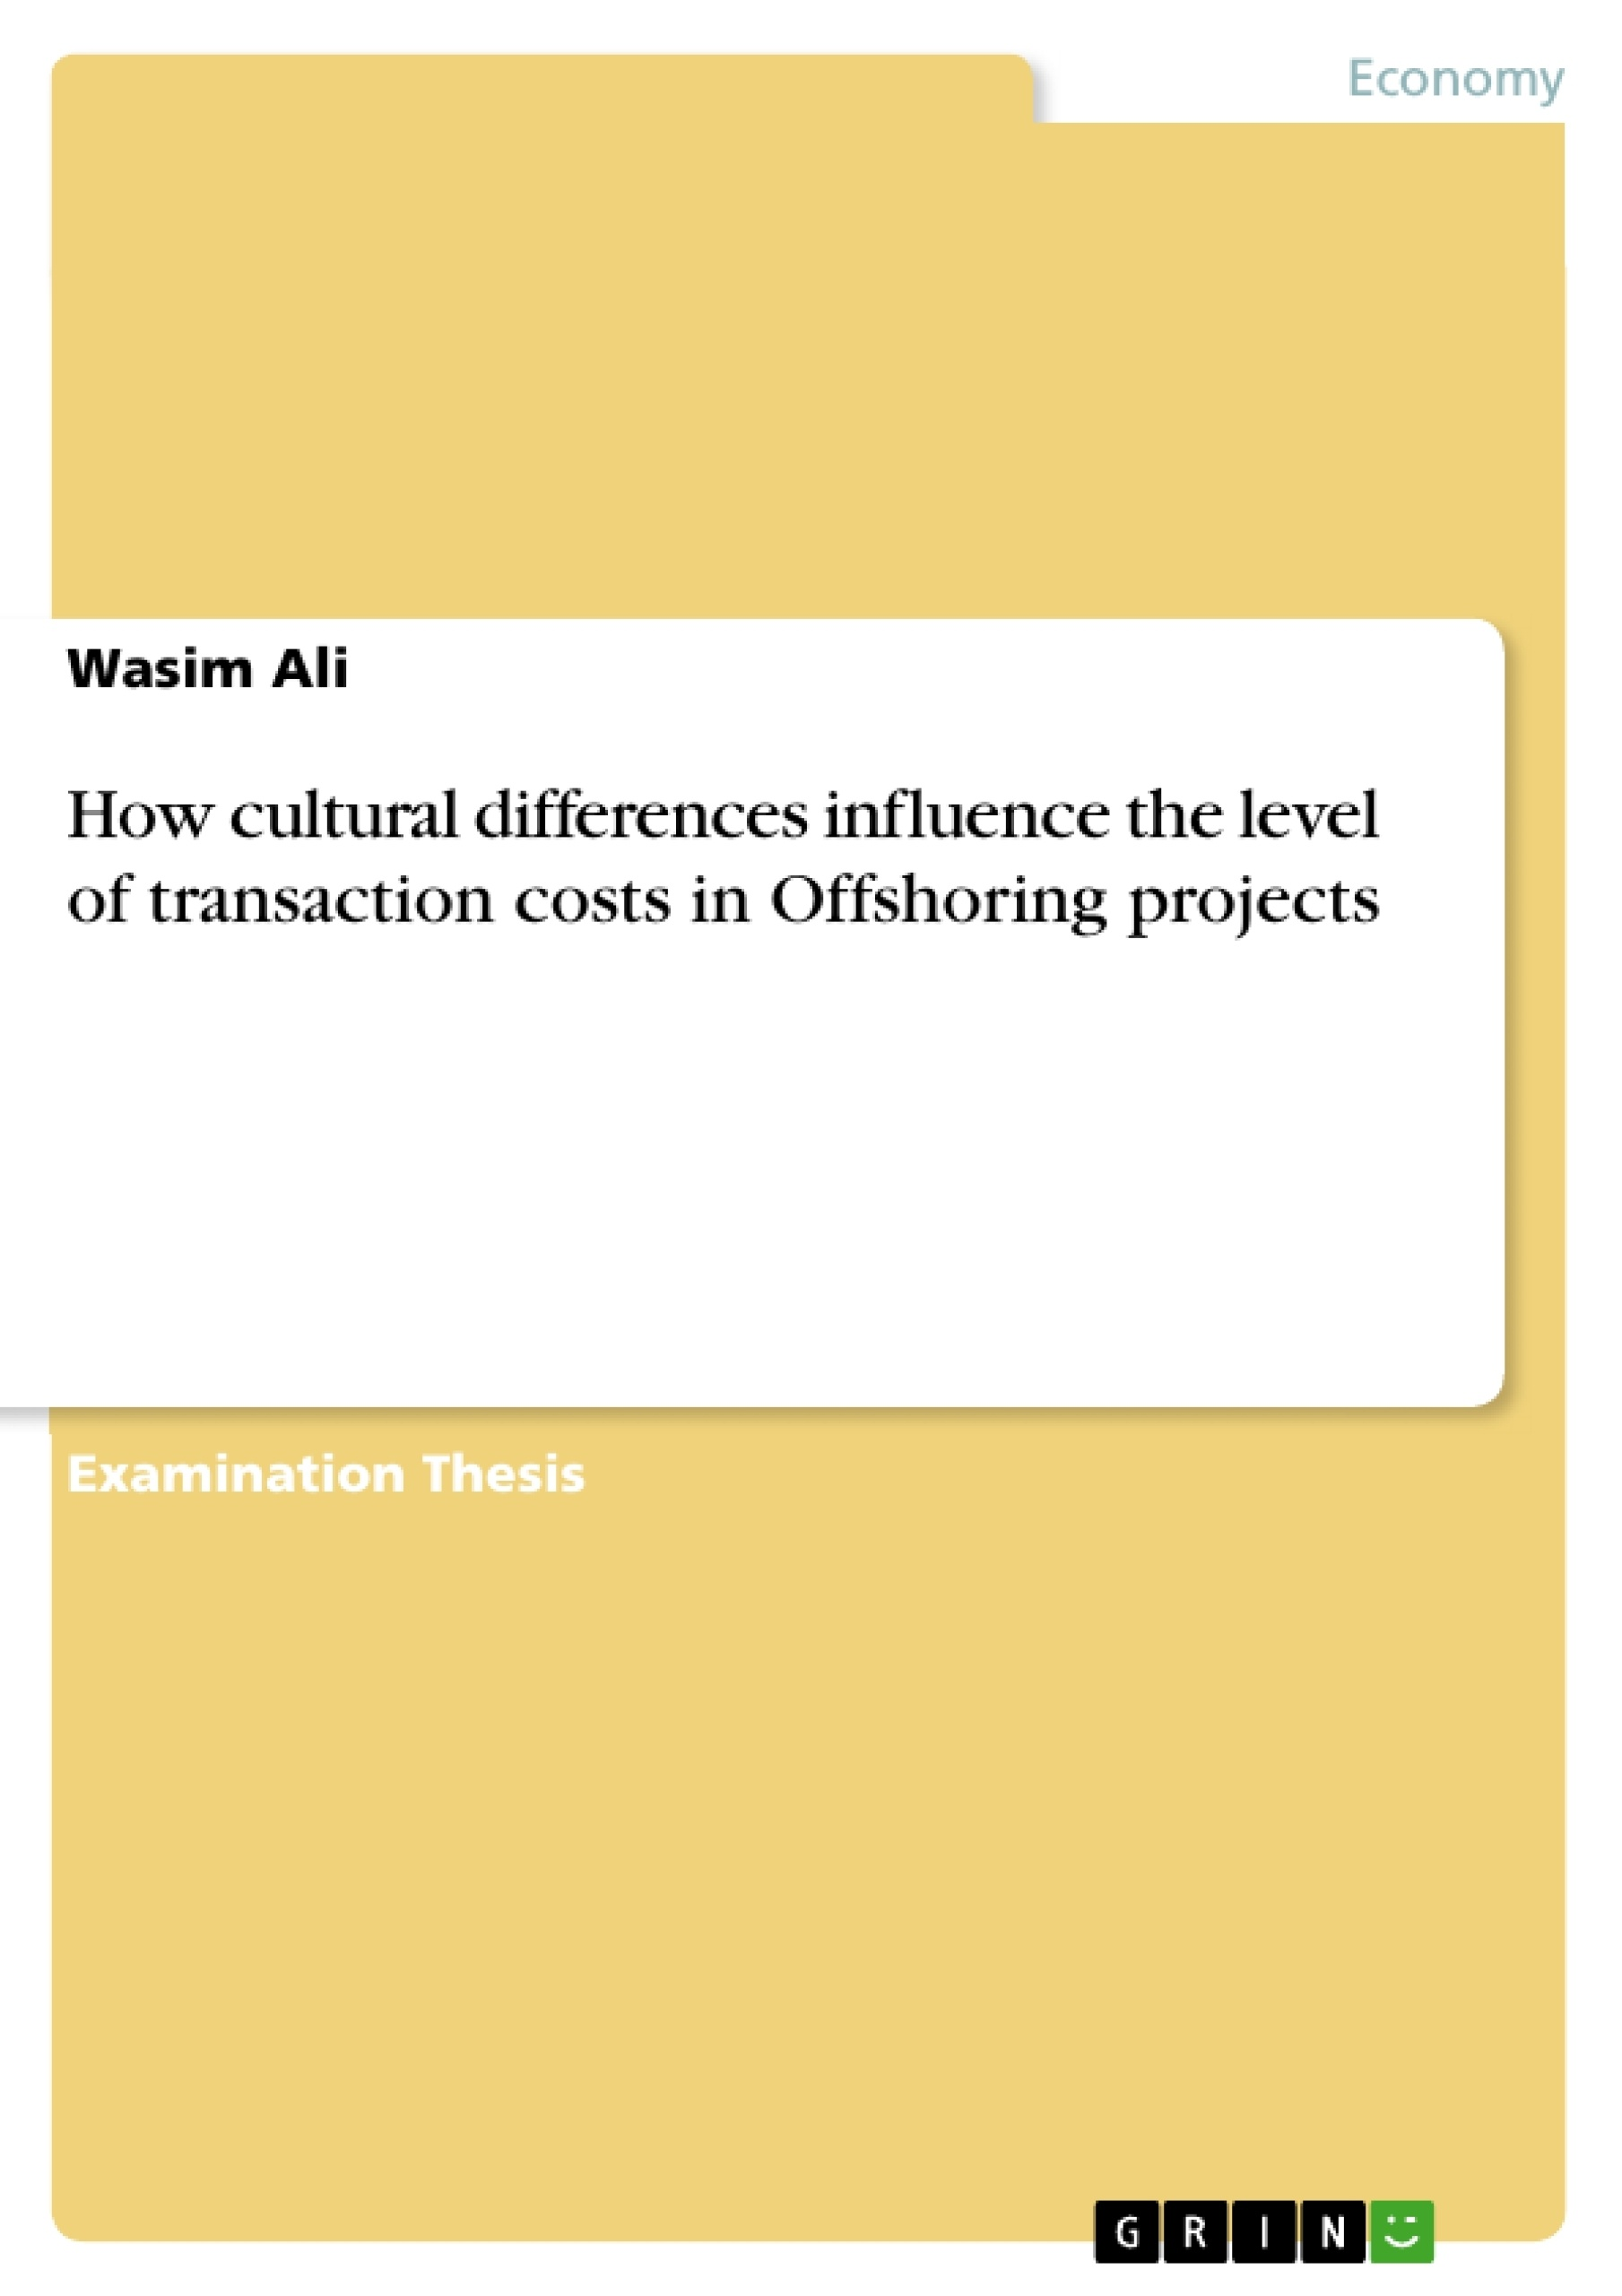 Title: How cultural differences influence the level of transaction costs in Offshoring projects